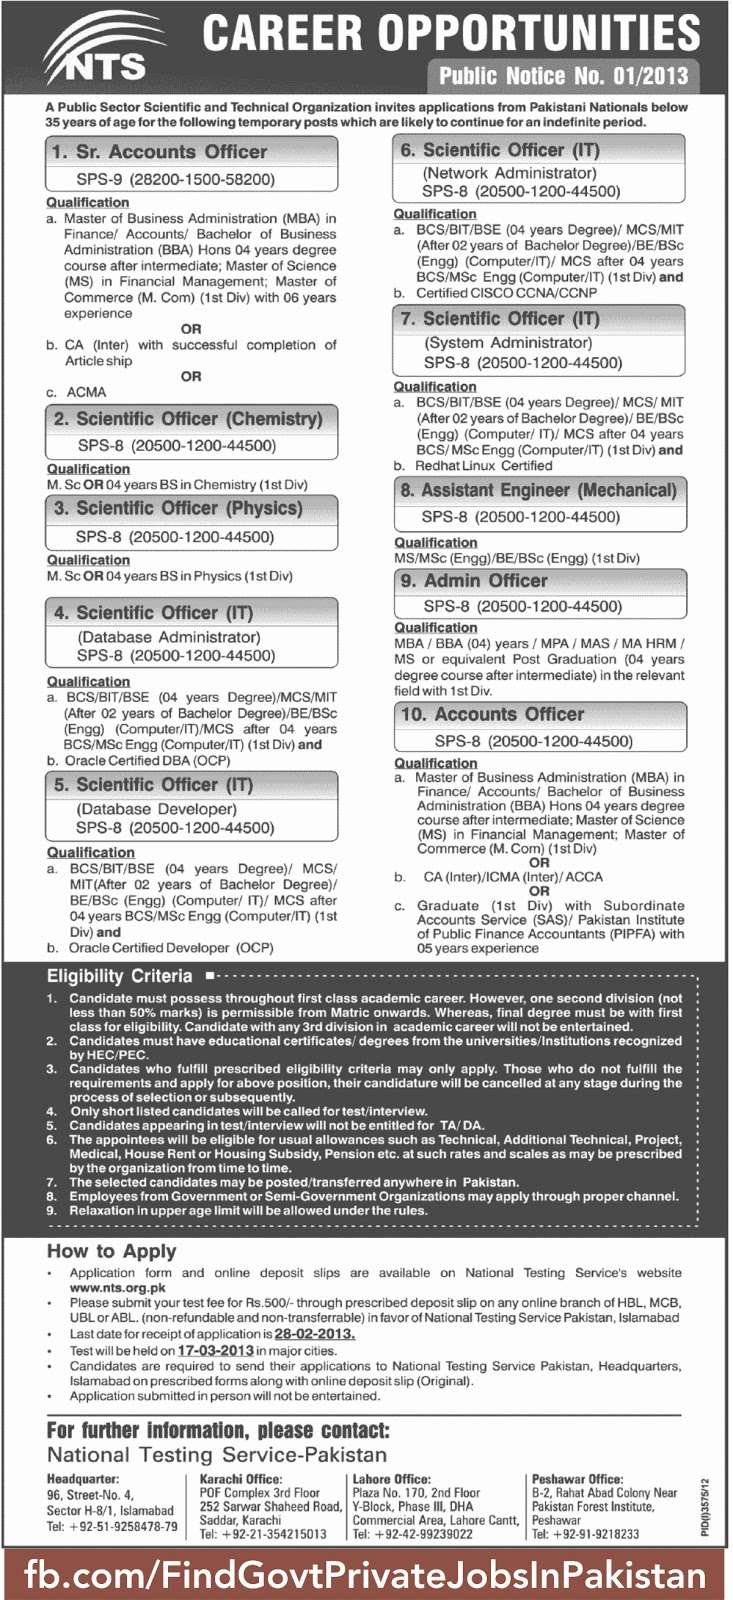 nts jobs ads